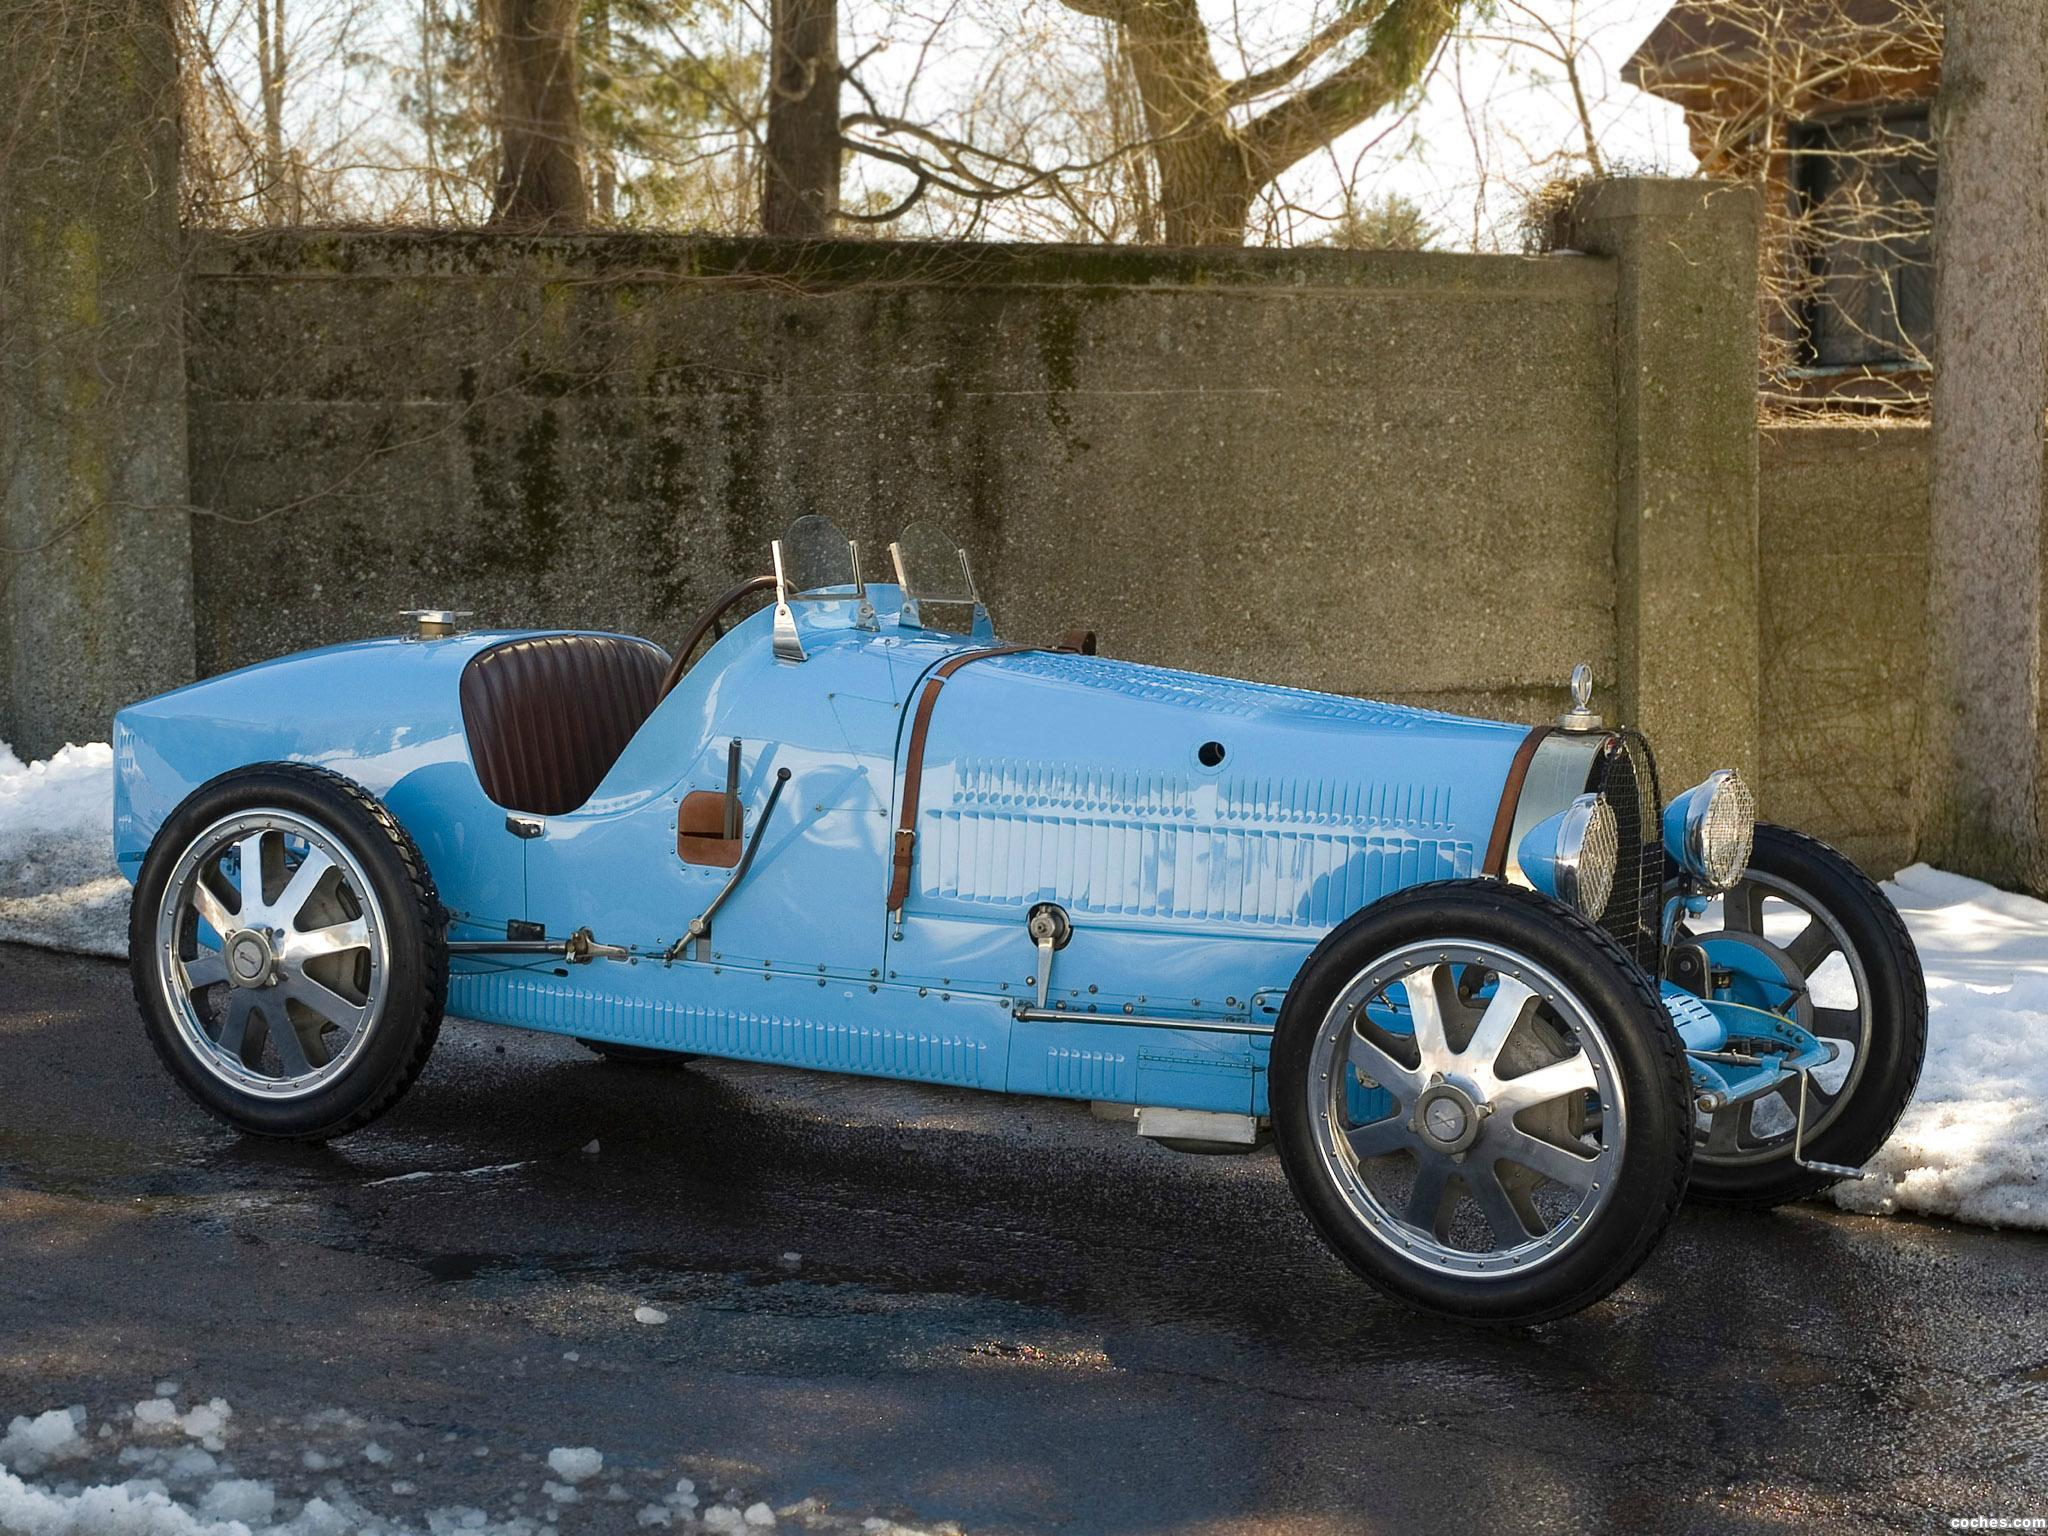 Fotos De Bugatti Type 39a 1925 Foto 2 HD Wallpapers Download free images and photos [musssic.tk]